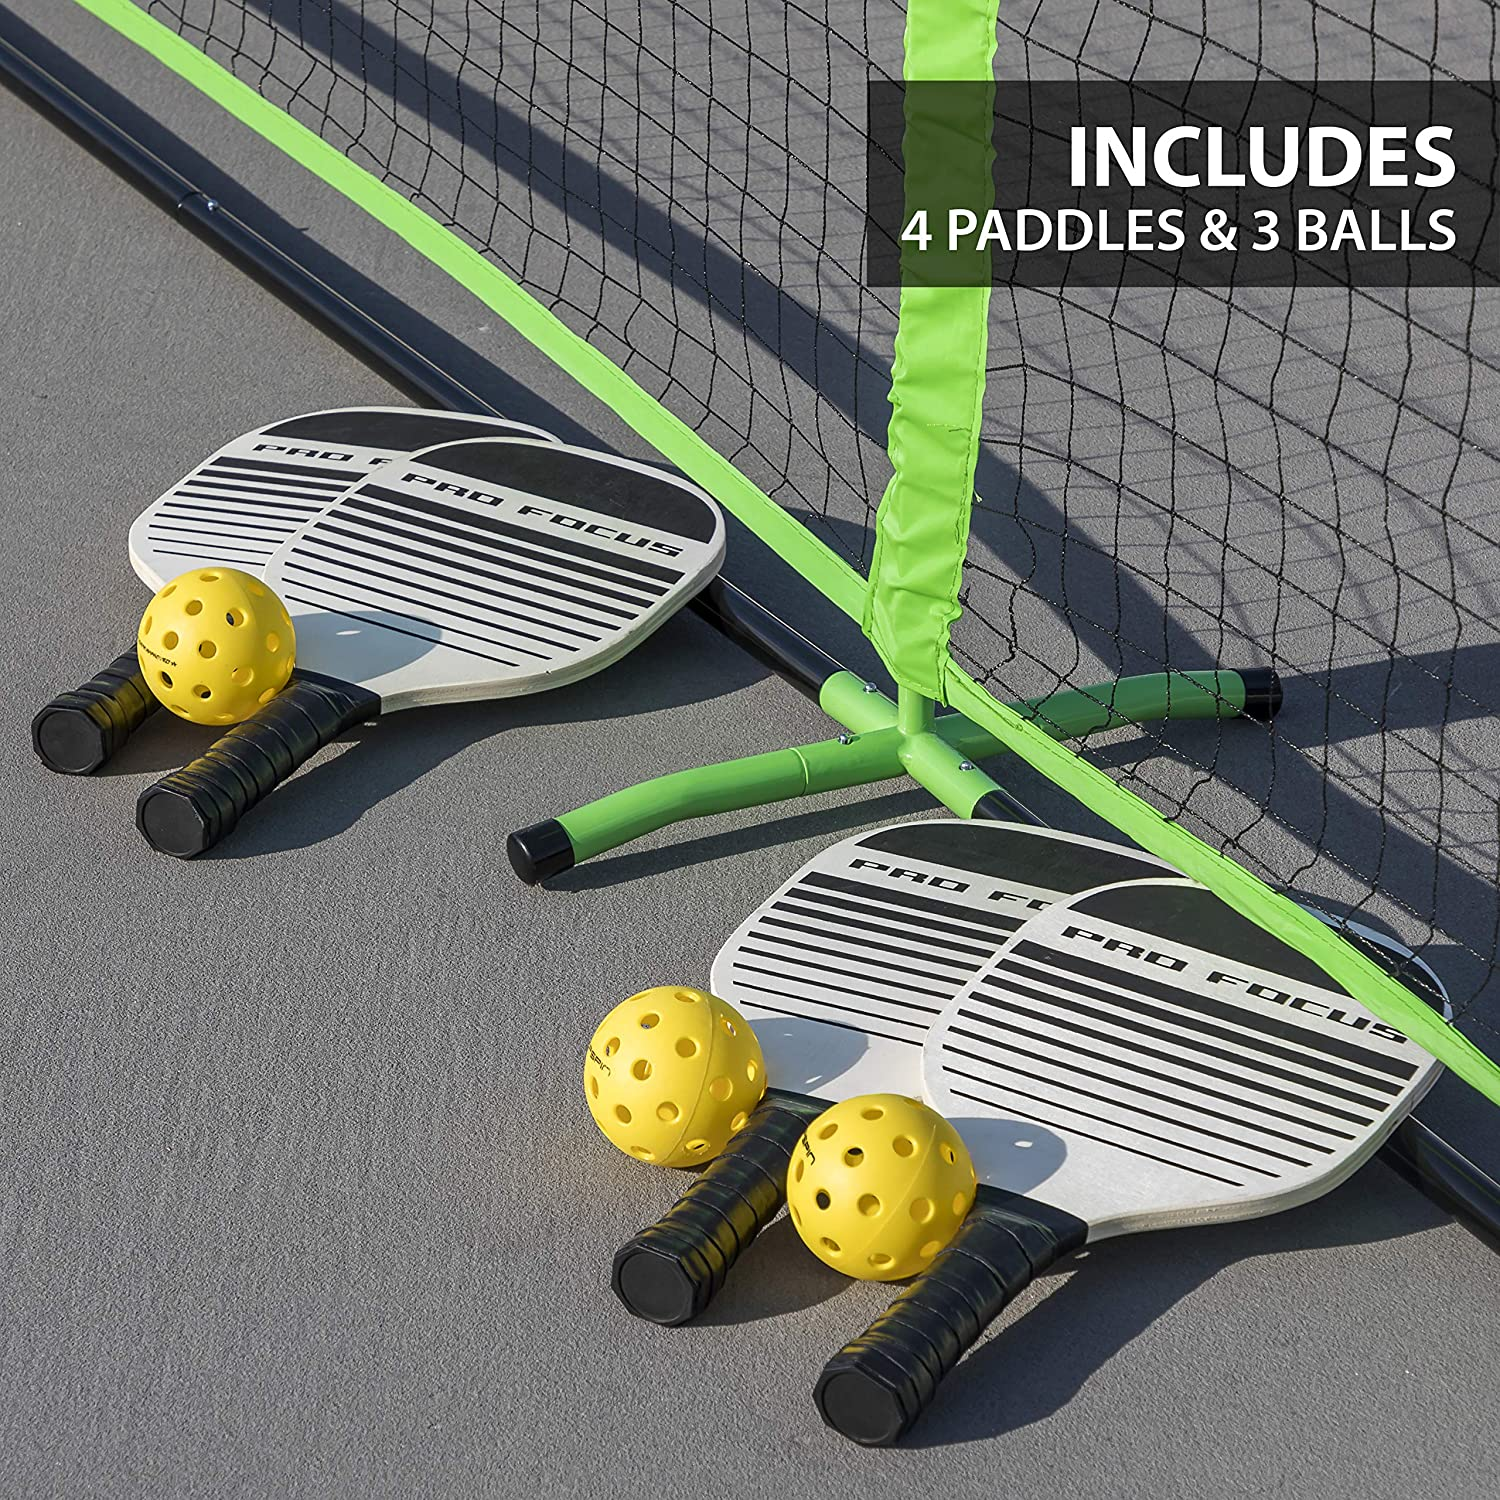 3 Pickleball Balls Pro Focus Pickleball Net Set and 1 Official Size Net East Point-FCA CNHUI-SX 1-1-11855-DS Complete with 4 Paddles